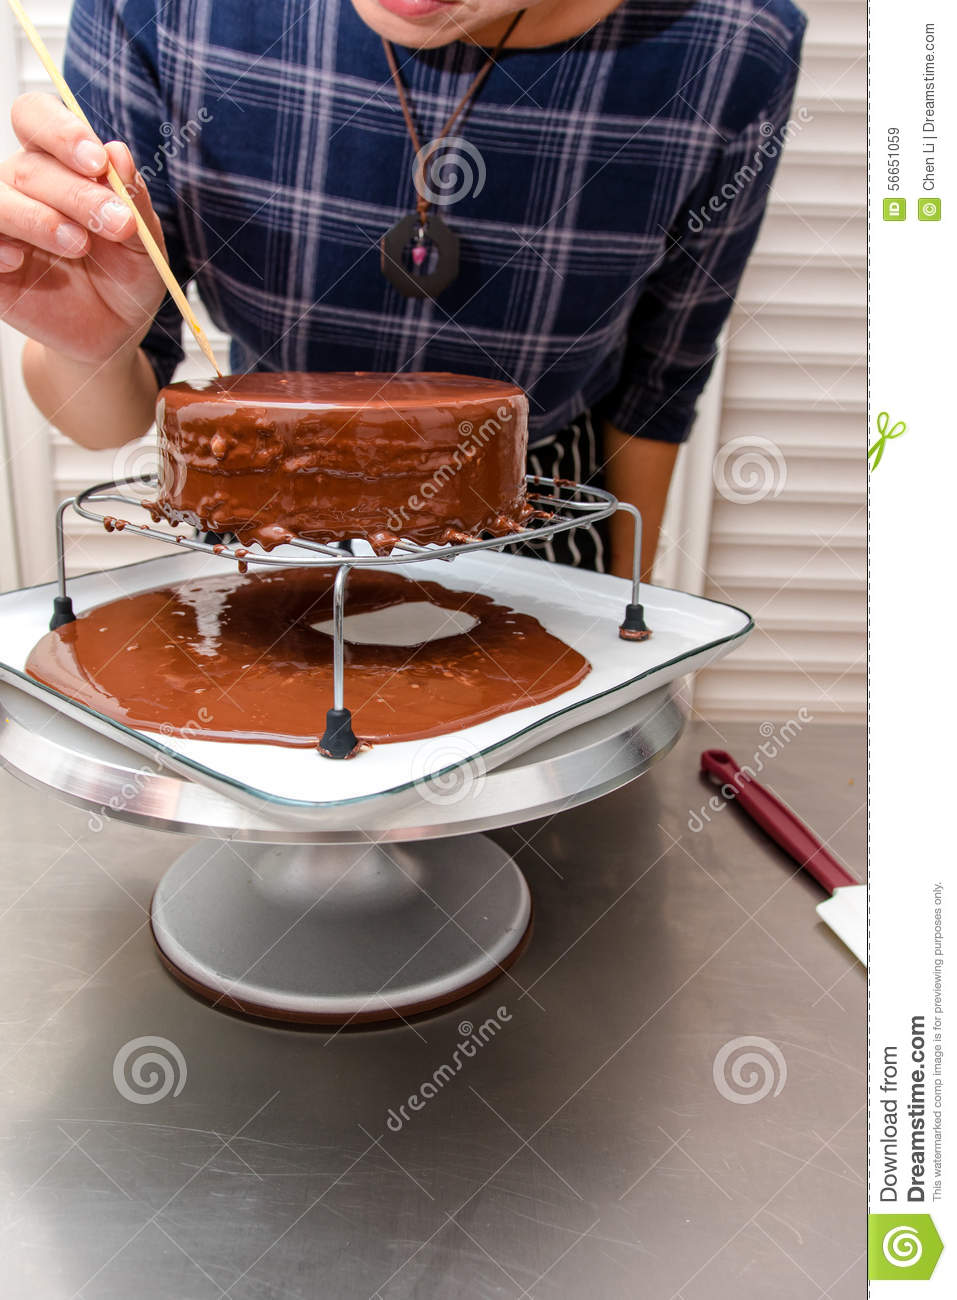 process of making cake